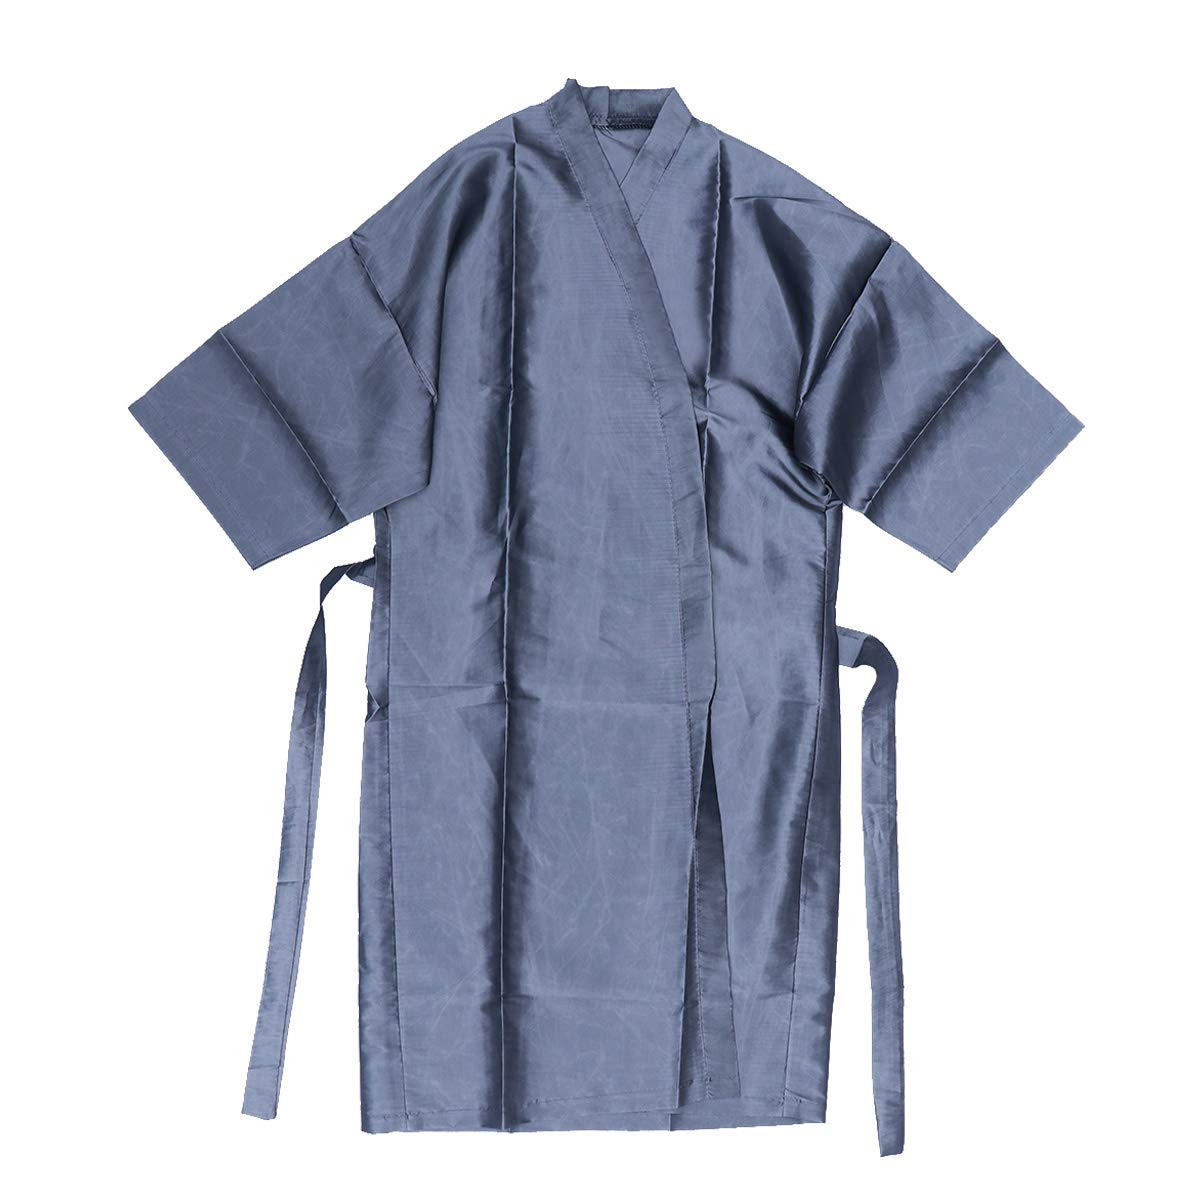 Frcolor Salon Client Gowns Kimono Style Grooming Hair Salon Smock for Clients Barbers (Silver)